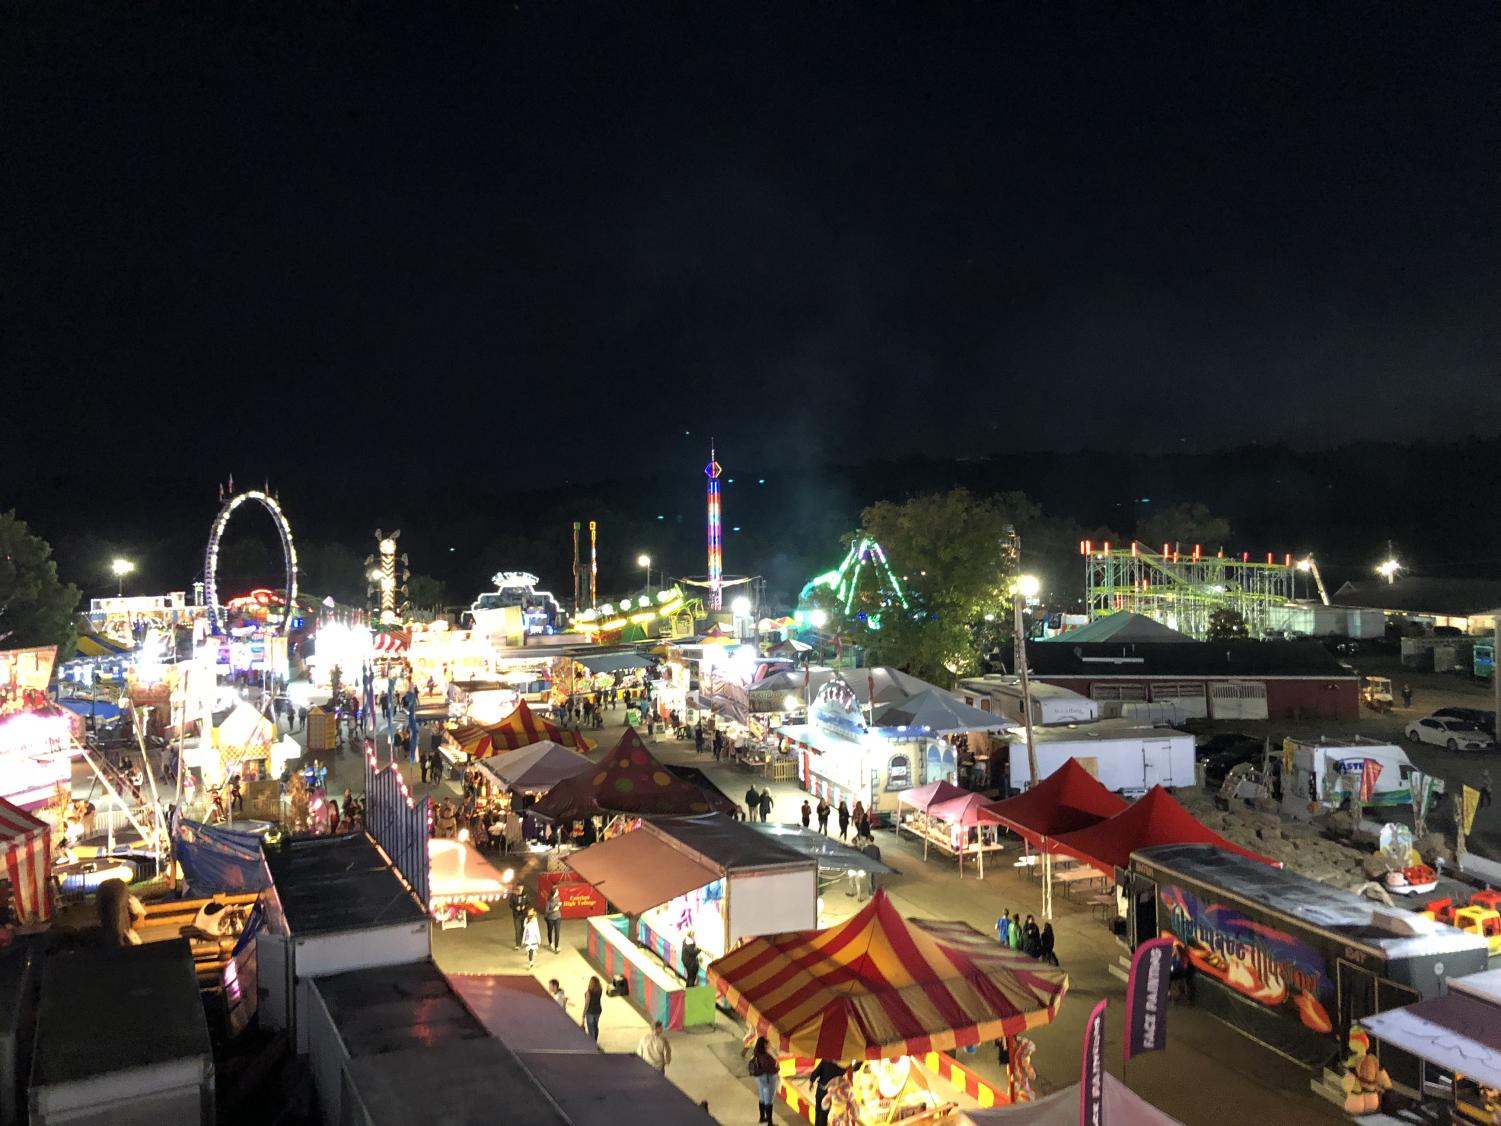 Aerial view of the fair at night